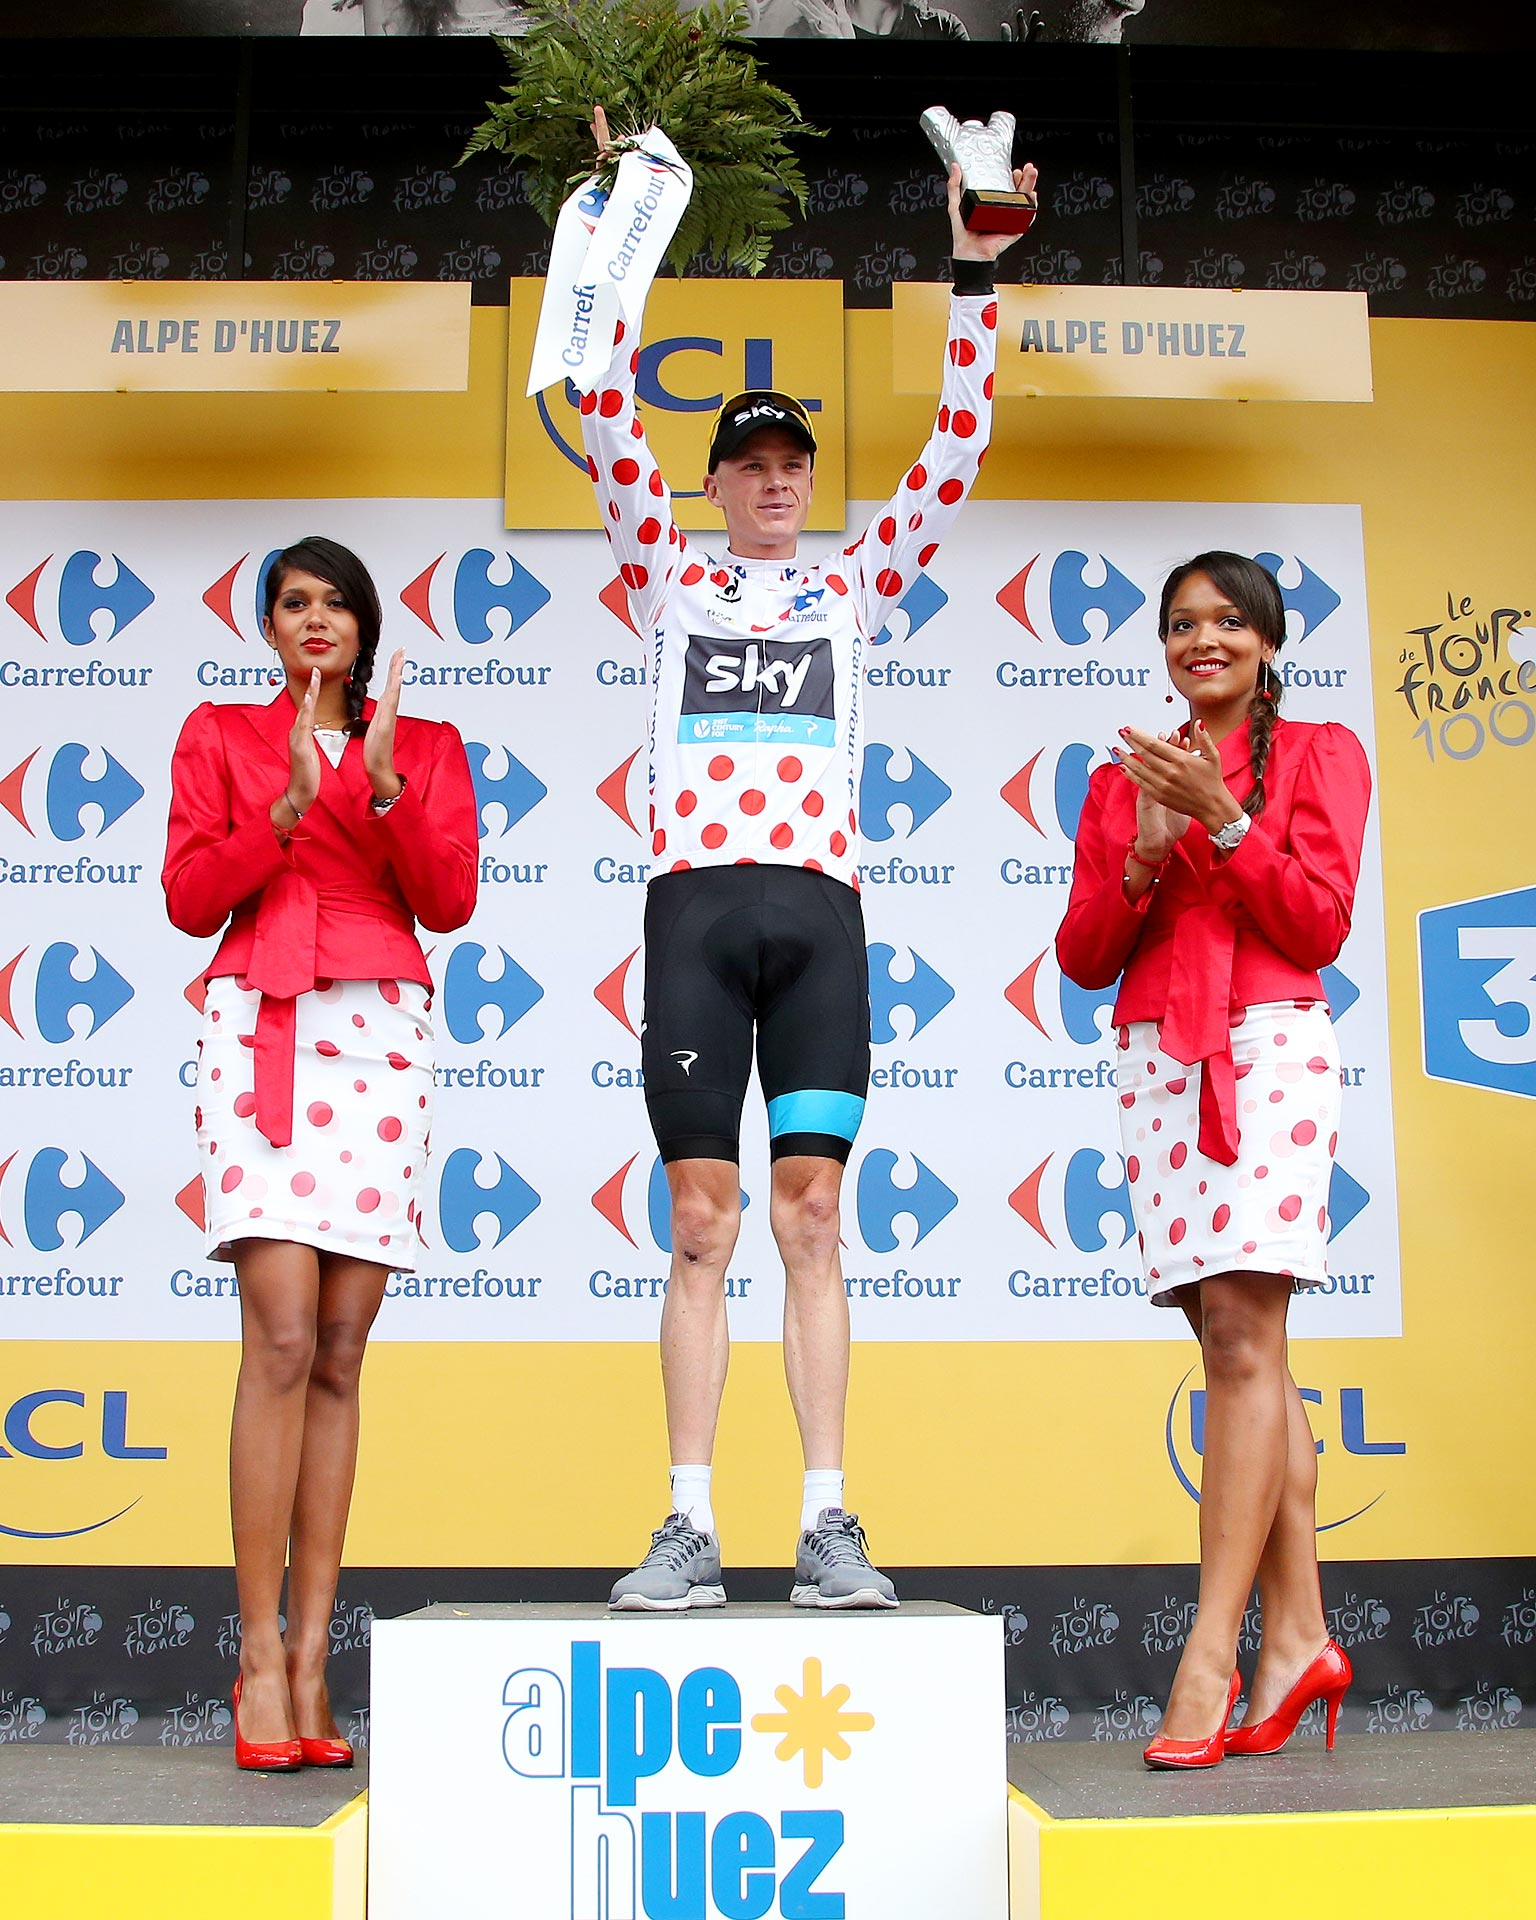 Christopher Froome best climber